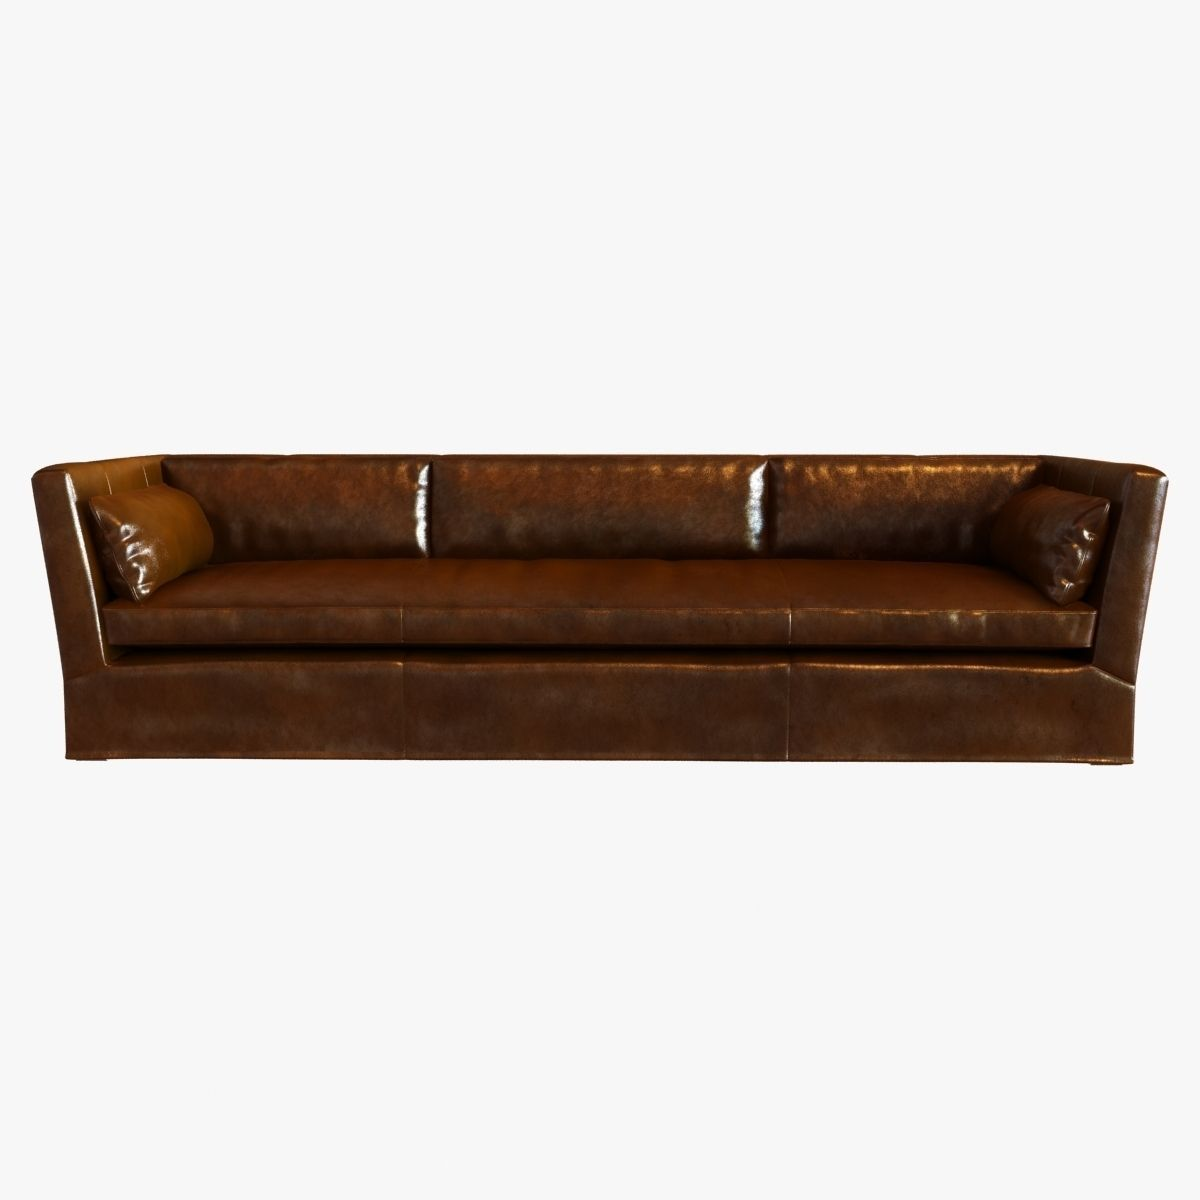 ... Restoration Hardware Belgian Shelter Arm Leather Sofa 3d Model Max Obj  3ds Fbx Mtl 2 ...